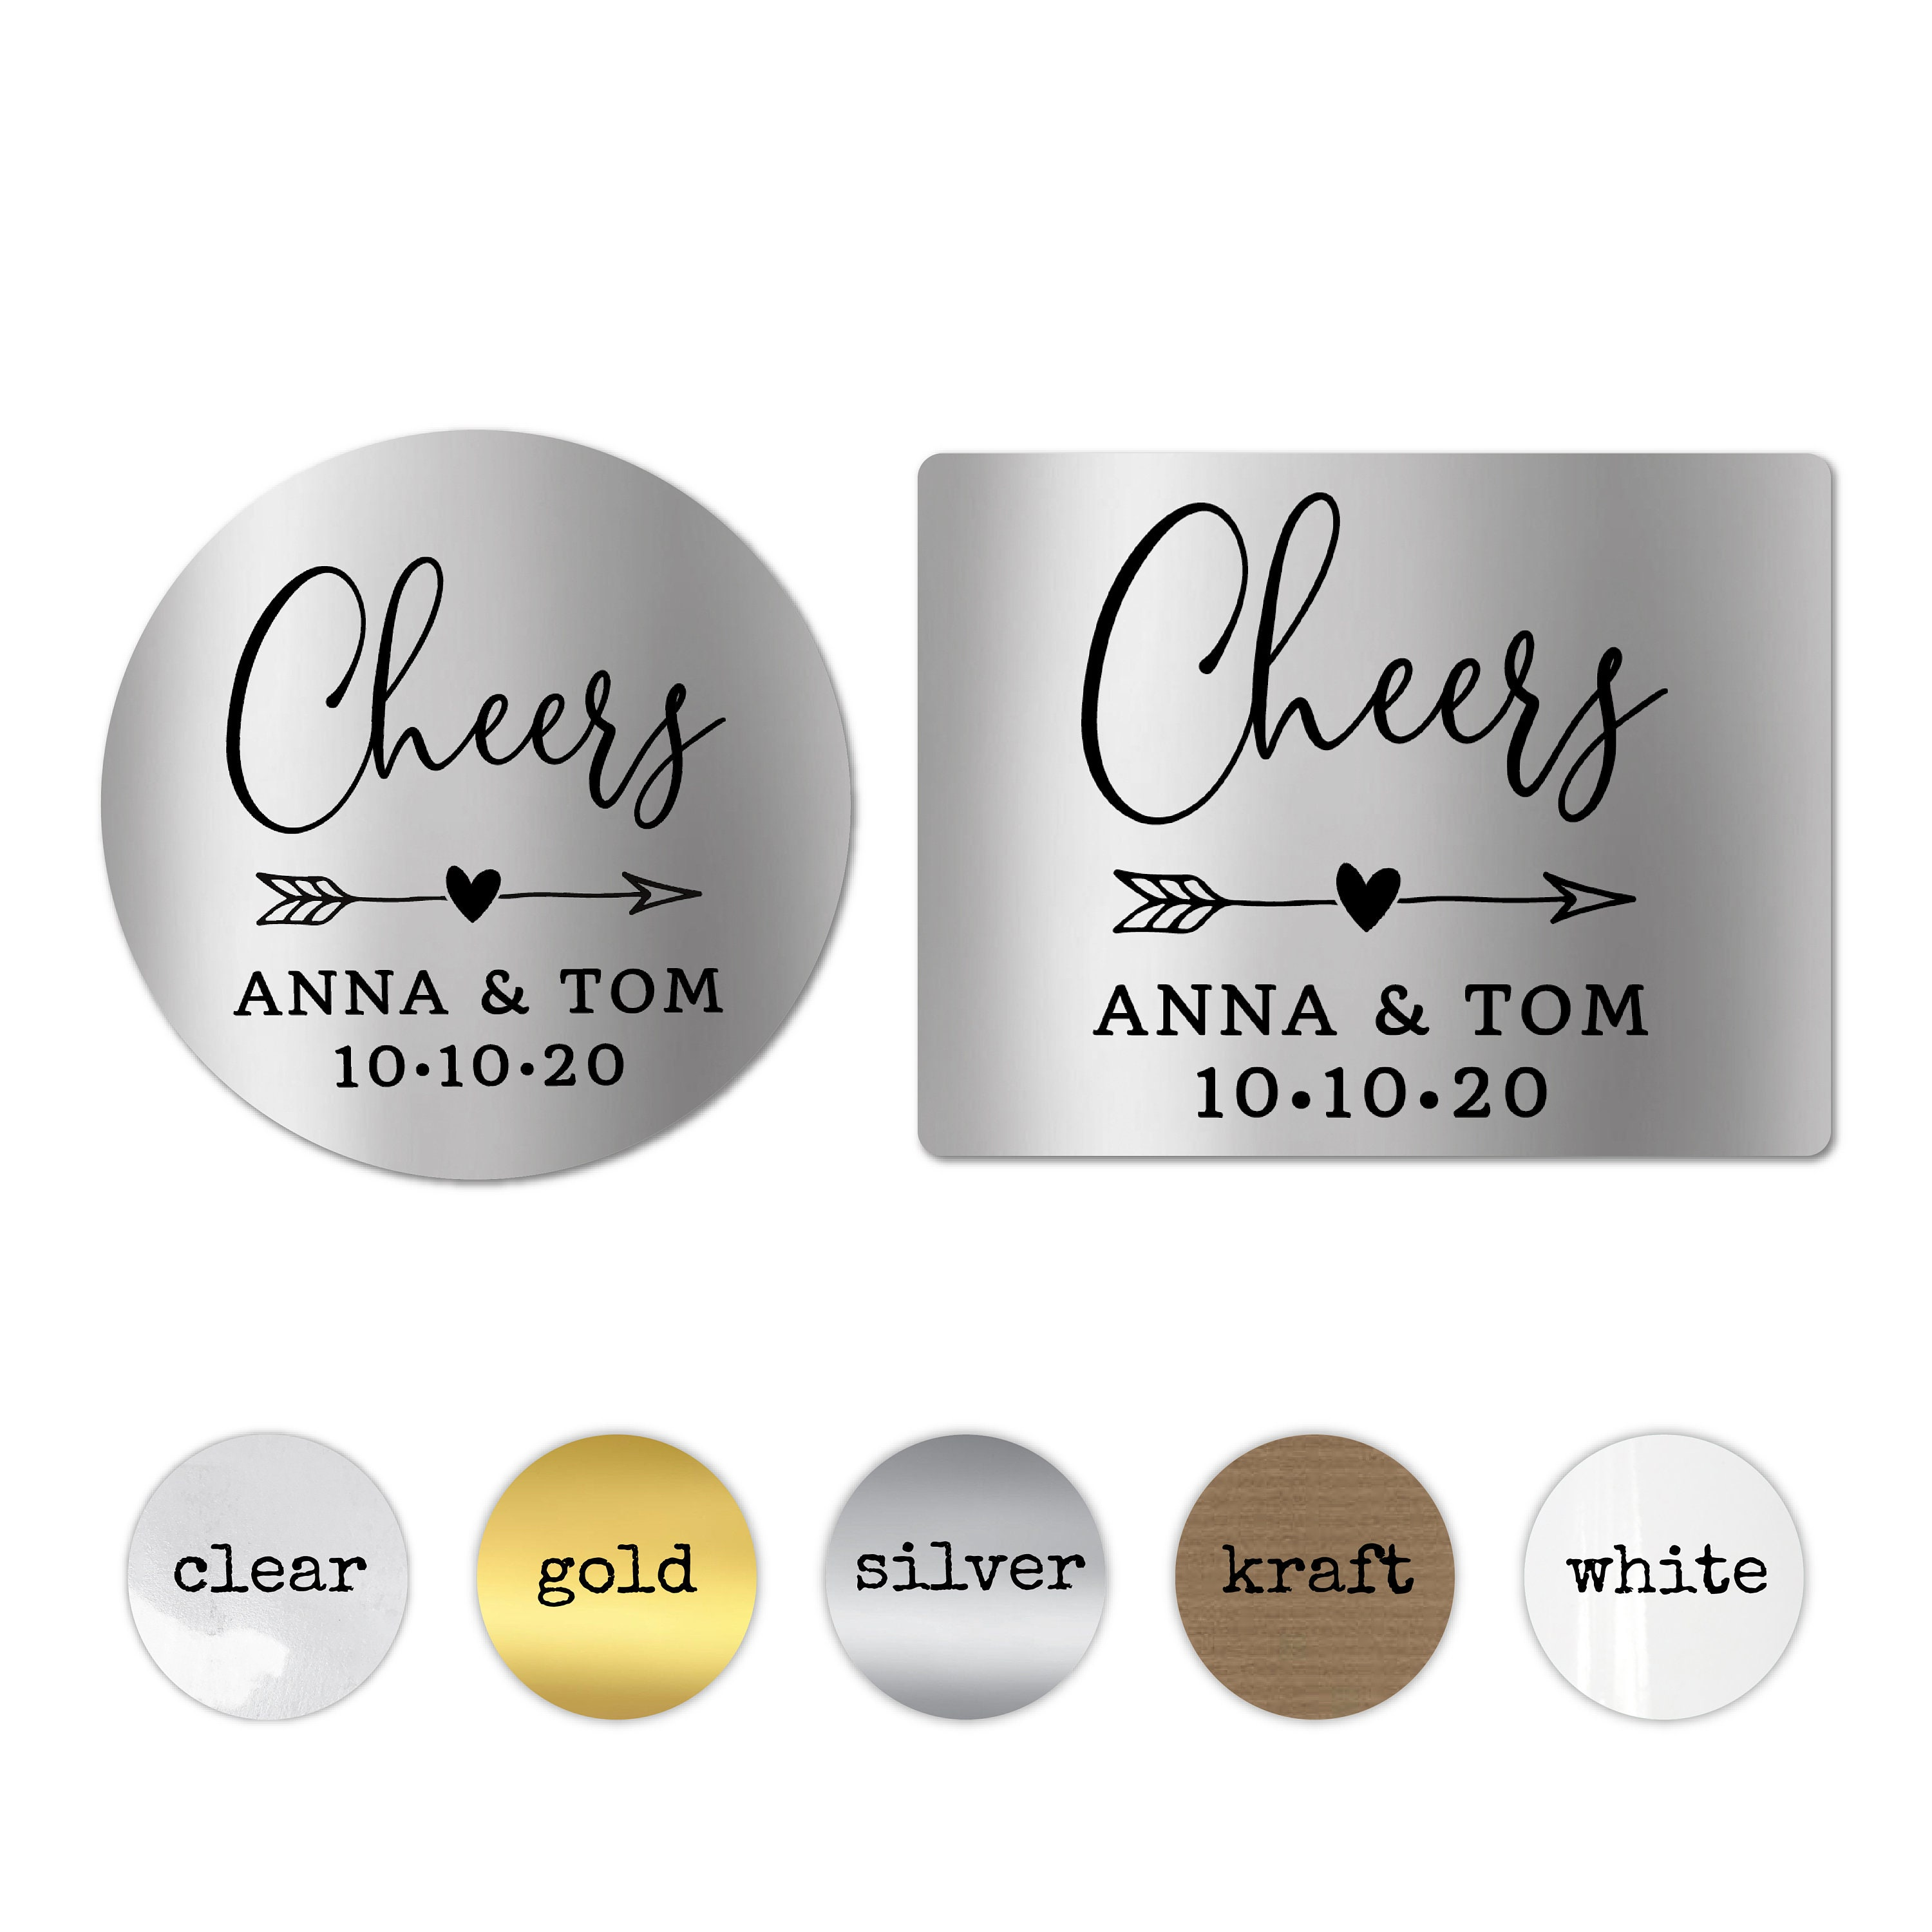 Cheers wedding stickers for glasses personalised wedding stickers round gold stickers